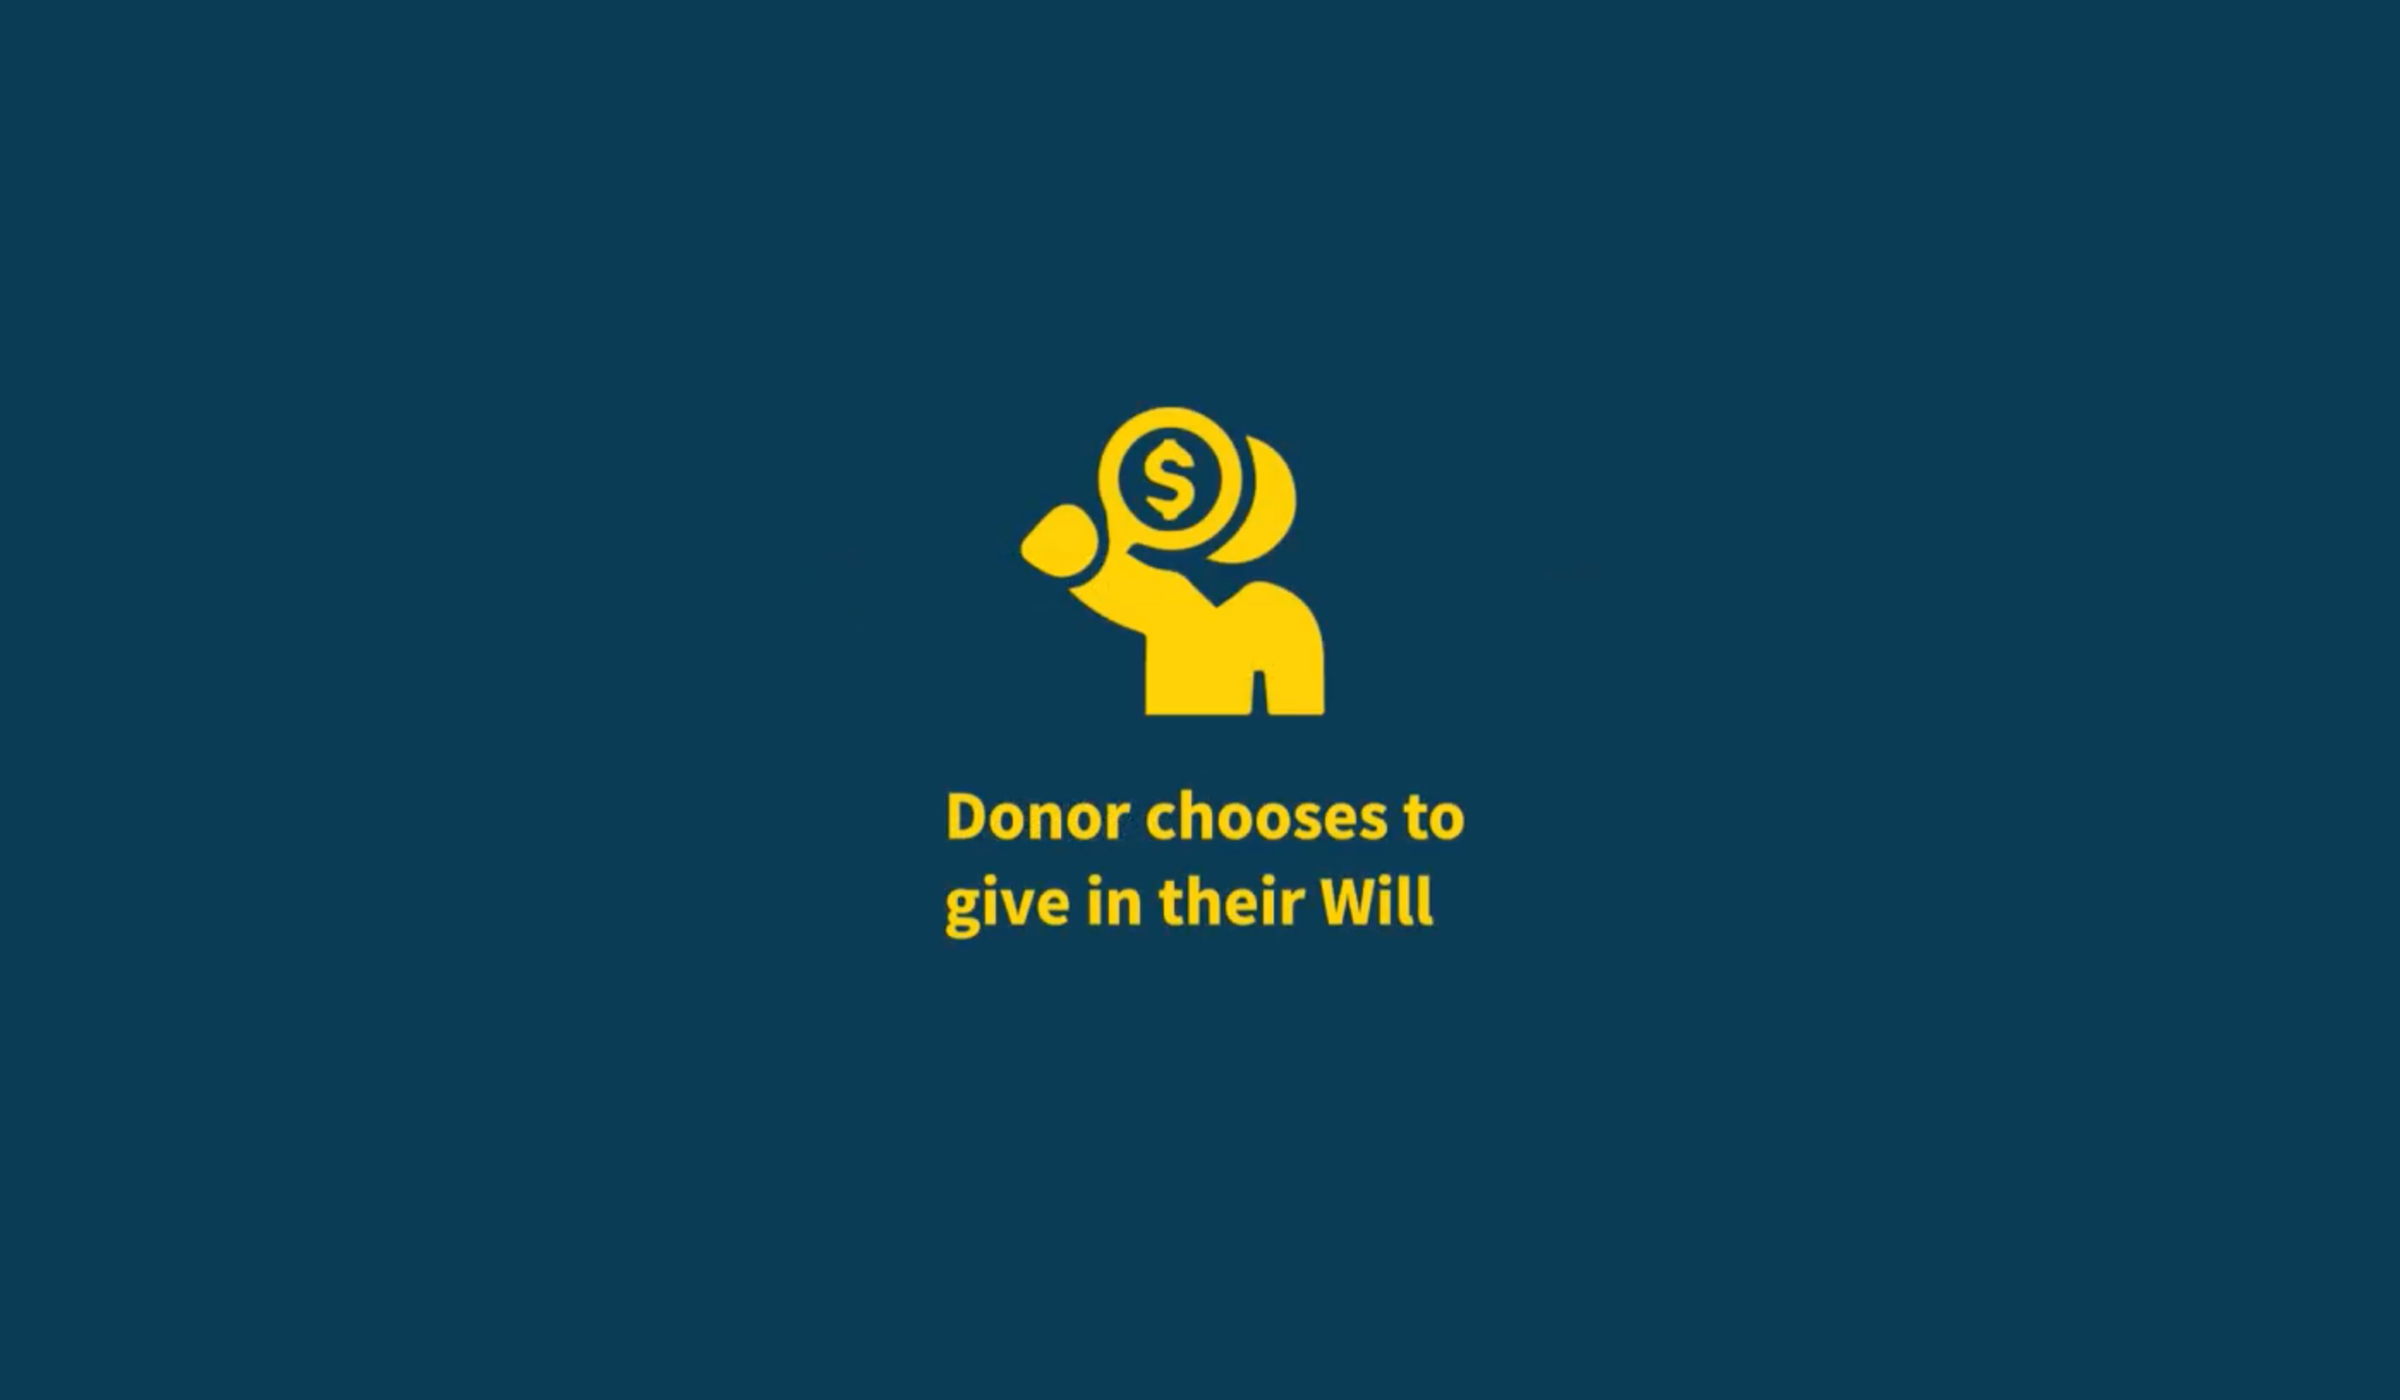 A slide from the animated video depicting an icon of a character choosing to donate on their will